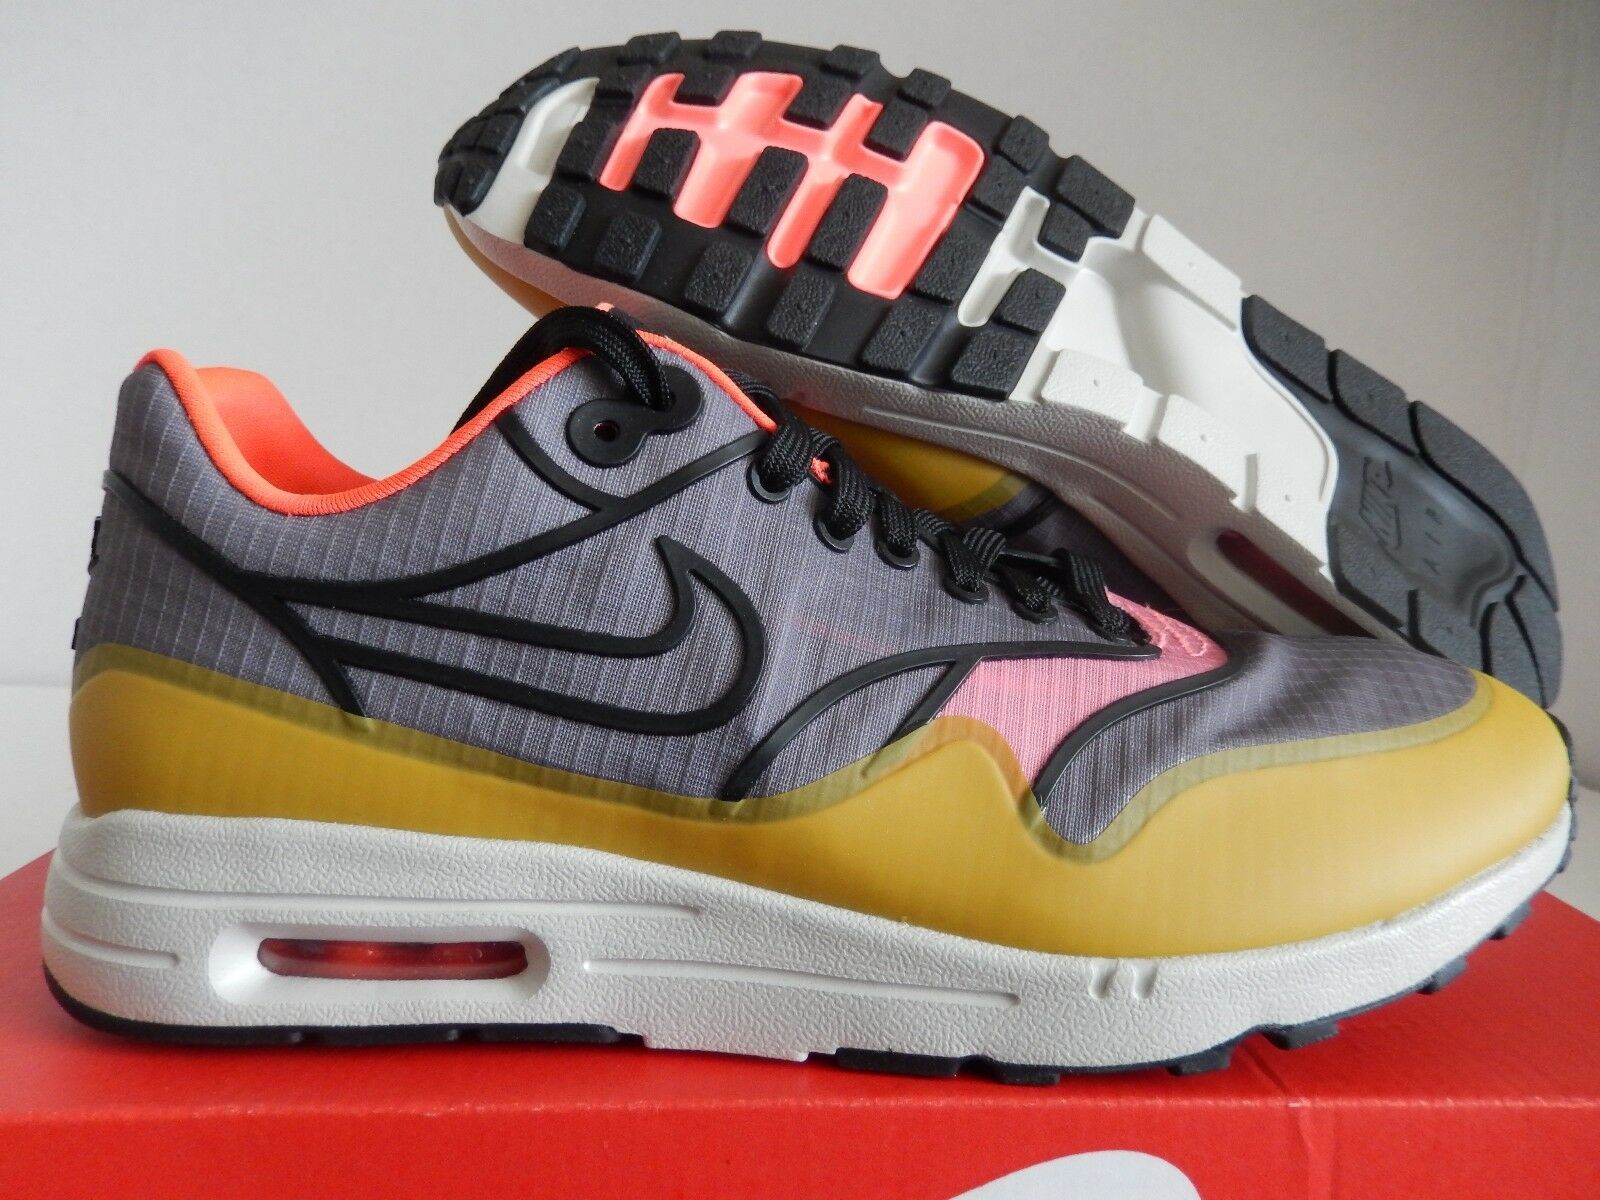 Mujeres Nike Air Max 1 Ultra 2.0 2.0 2.0 si Cool gris-Negro-Luz Hueso Talla 8.5  descuento online